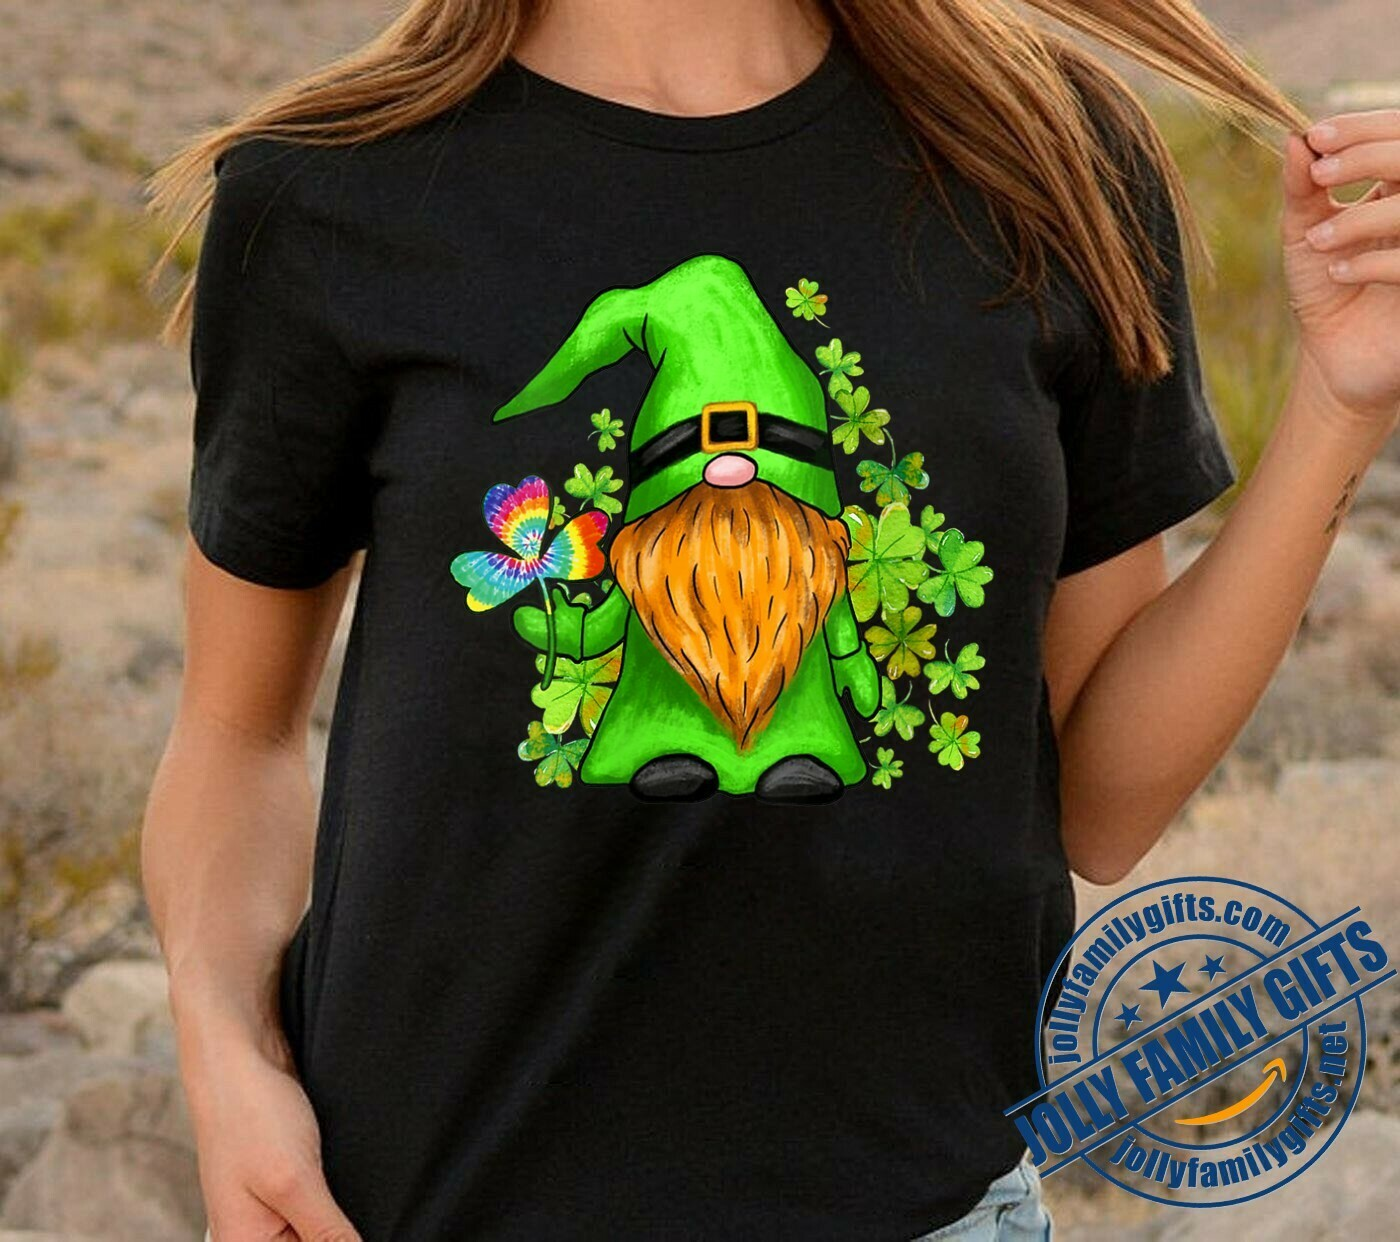 Irish Hippie Gnome lucky Patrick's Day,Gnome Holding Green Shamrocks Four Leaf Clover  T-Shirt Hoodie Sweatshirt Sweater Tee Kids Youth Gifts Jolly Family Gifts